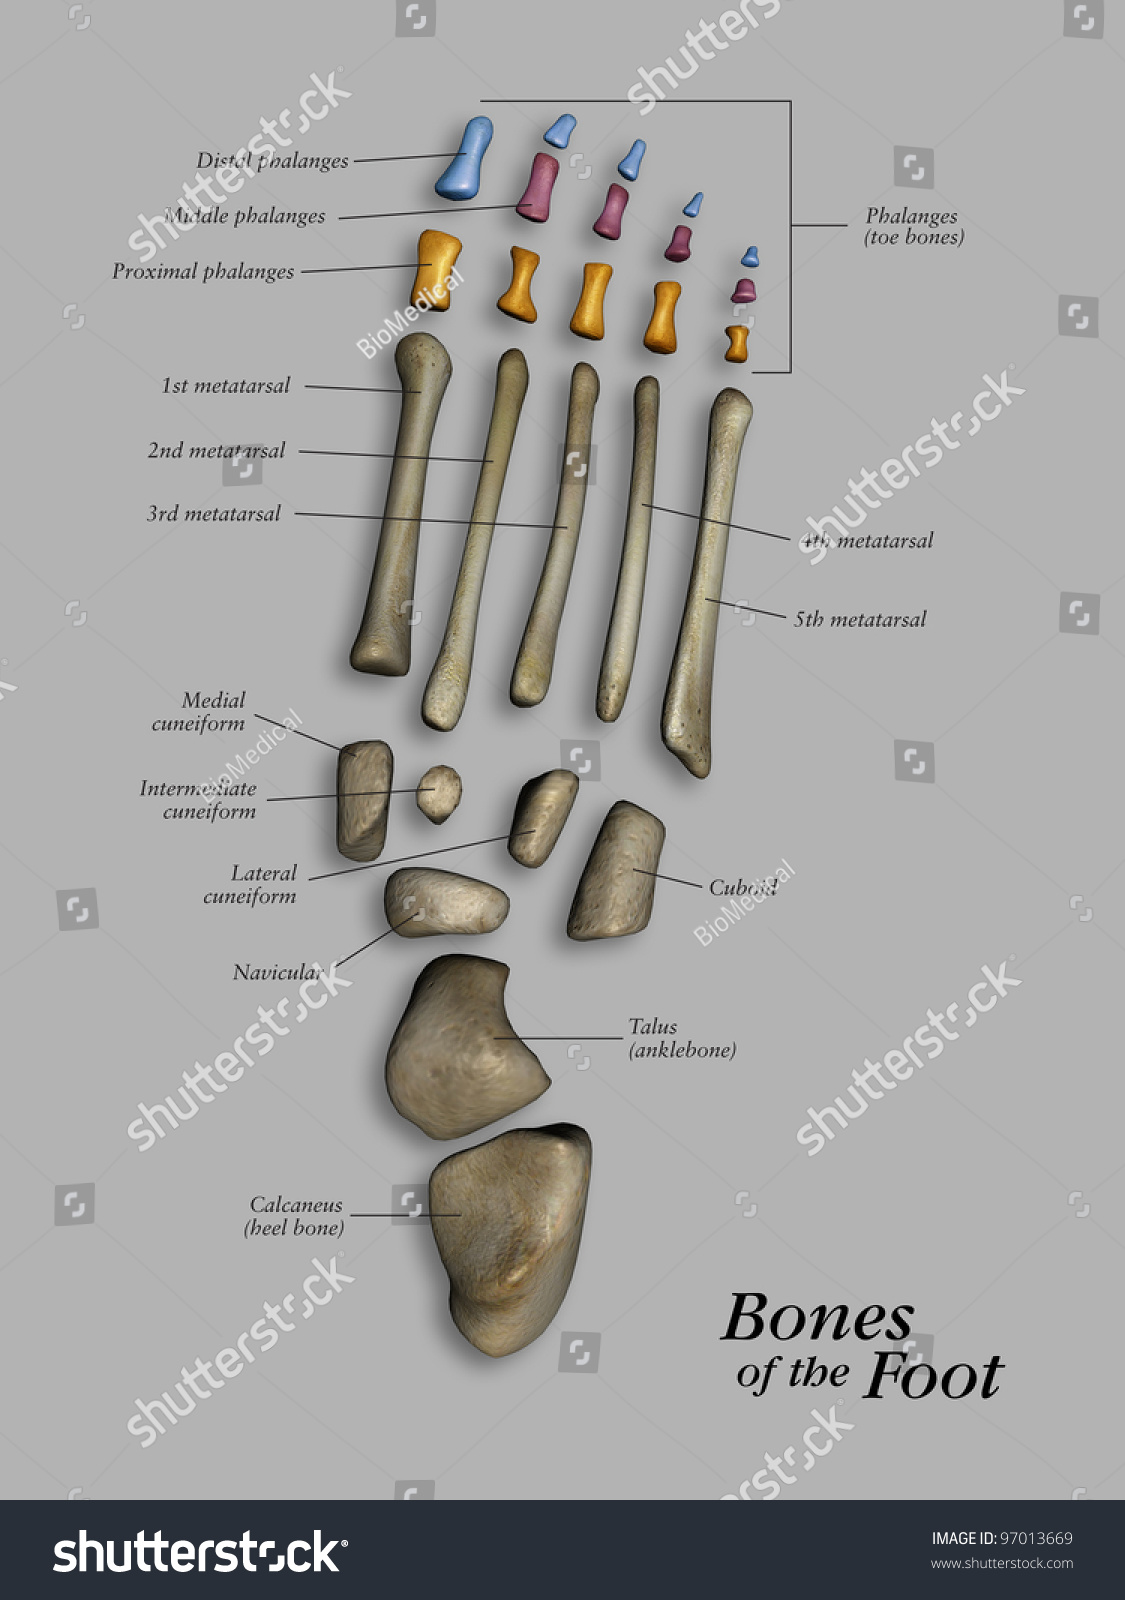 human foot skeleton diagram labeled erd for inventory system bones of the stock photo 97013669 shutterstock